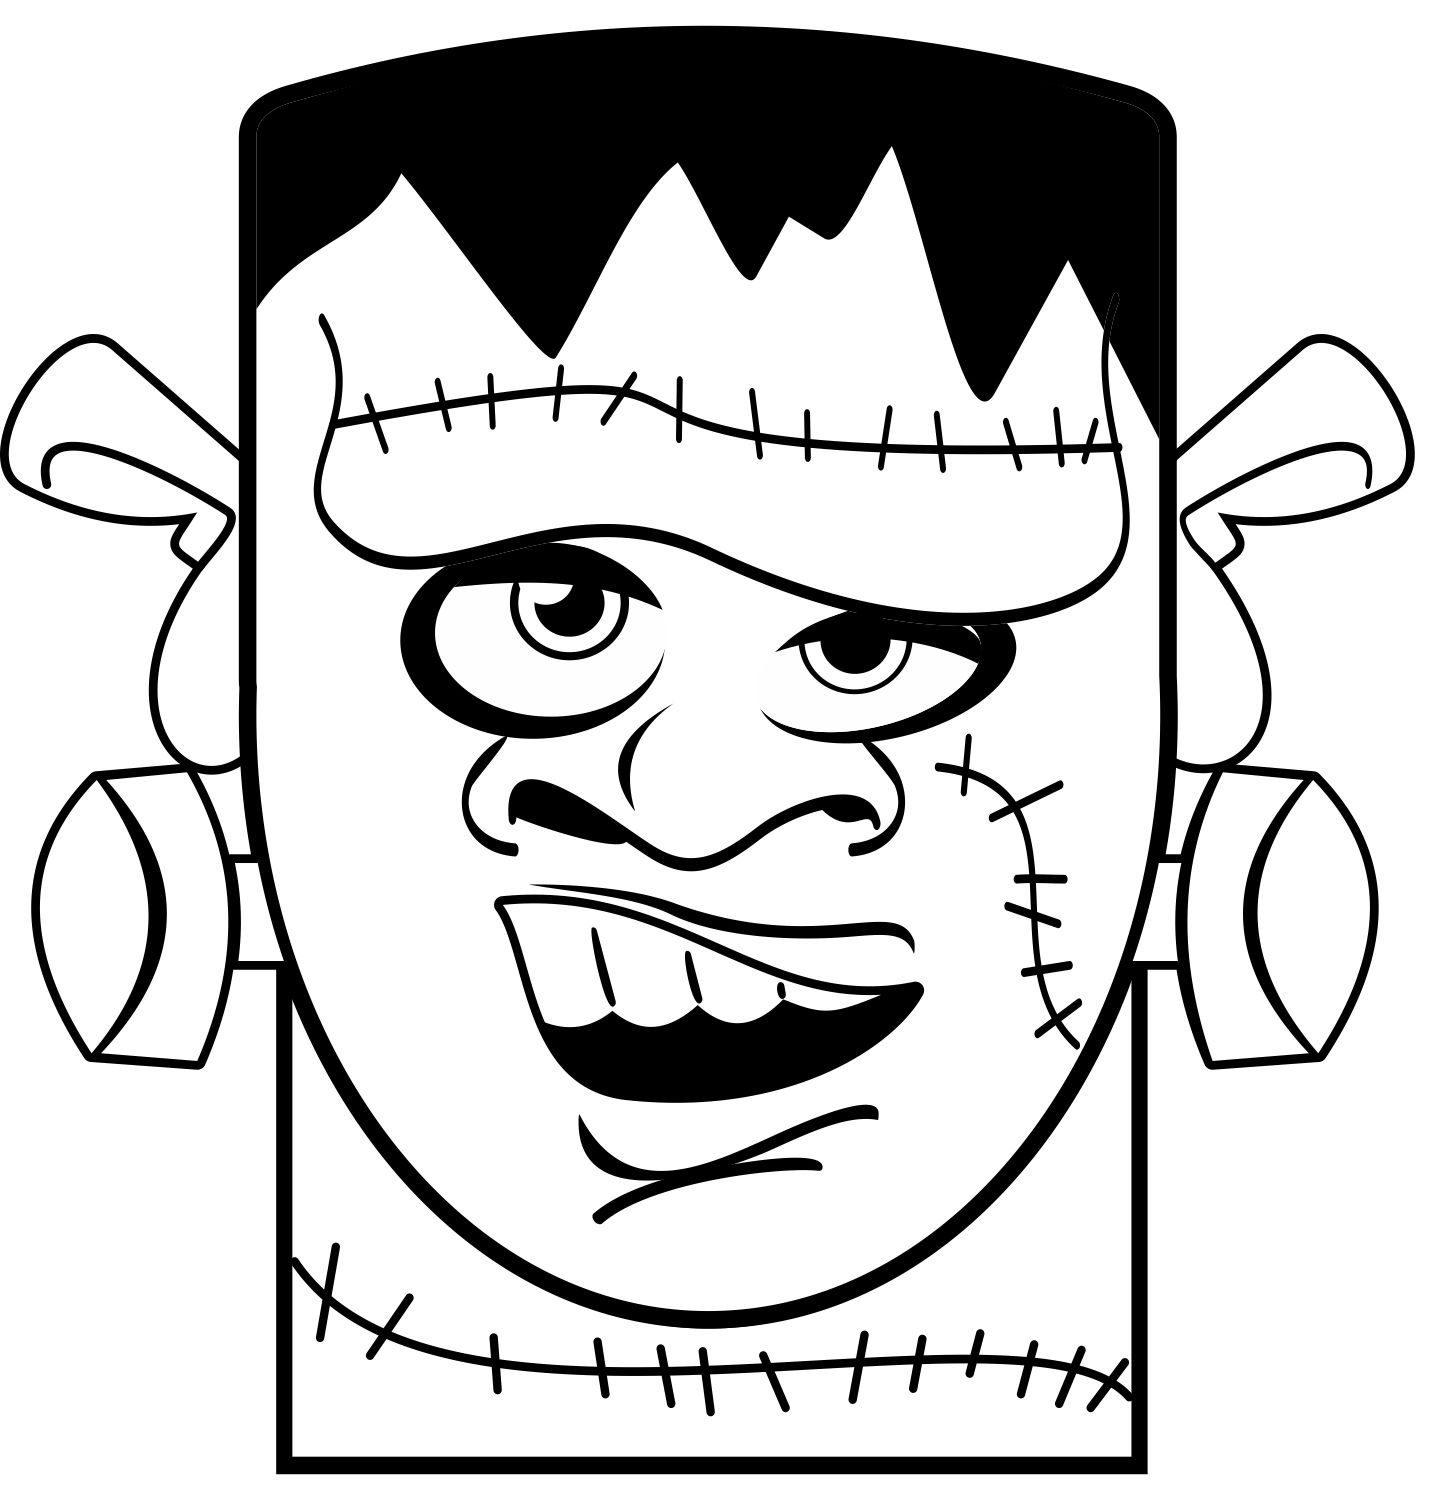 Frankenstein Coloring Pages Coloring Pages For Kids Free Coloring Pages